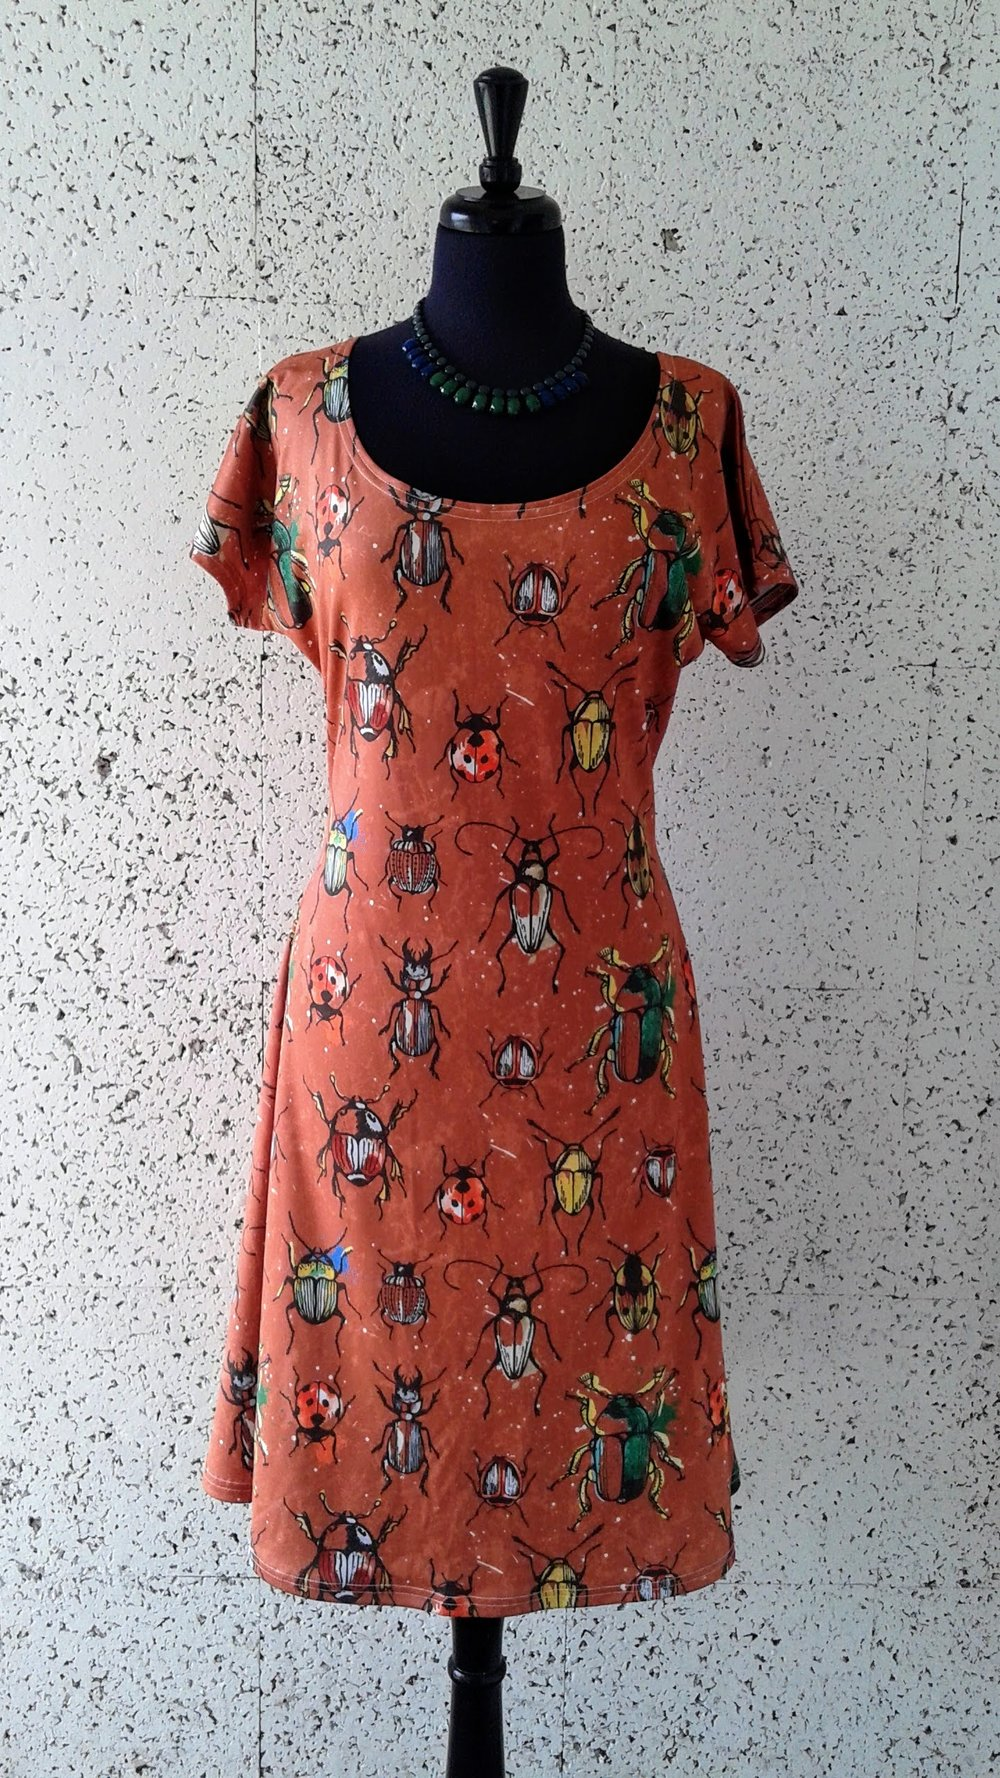 Cowcow dress; Size XL, $42